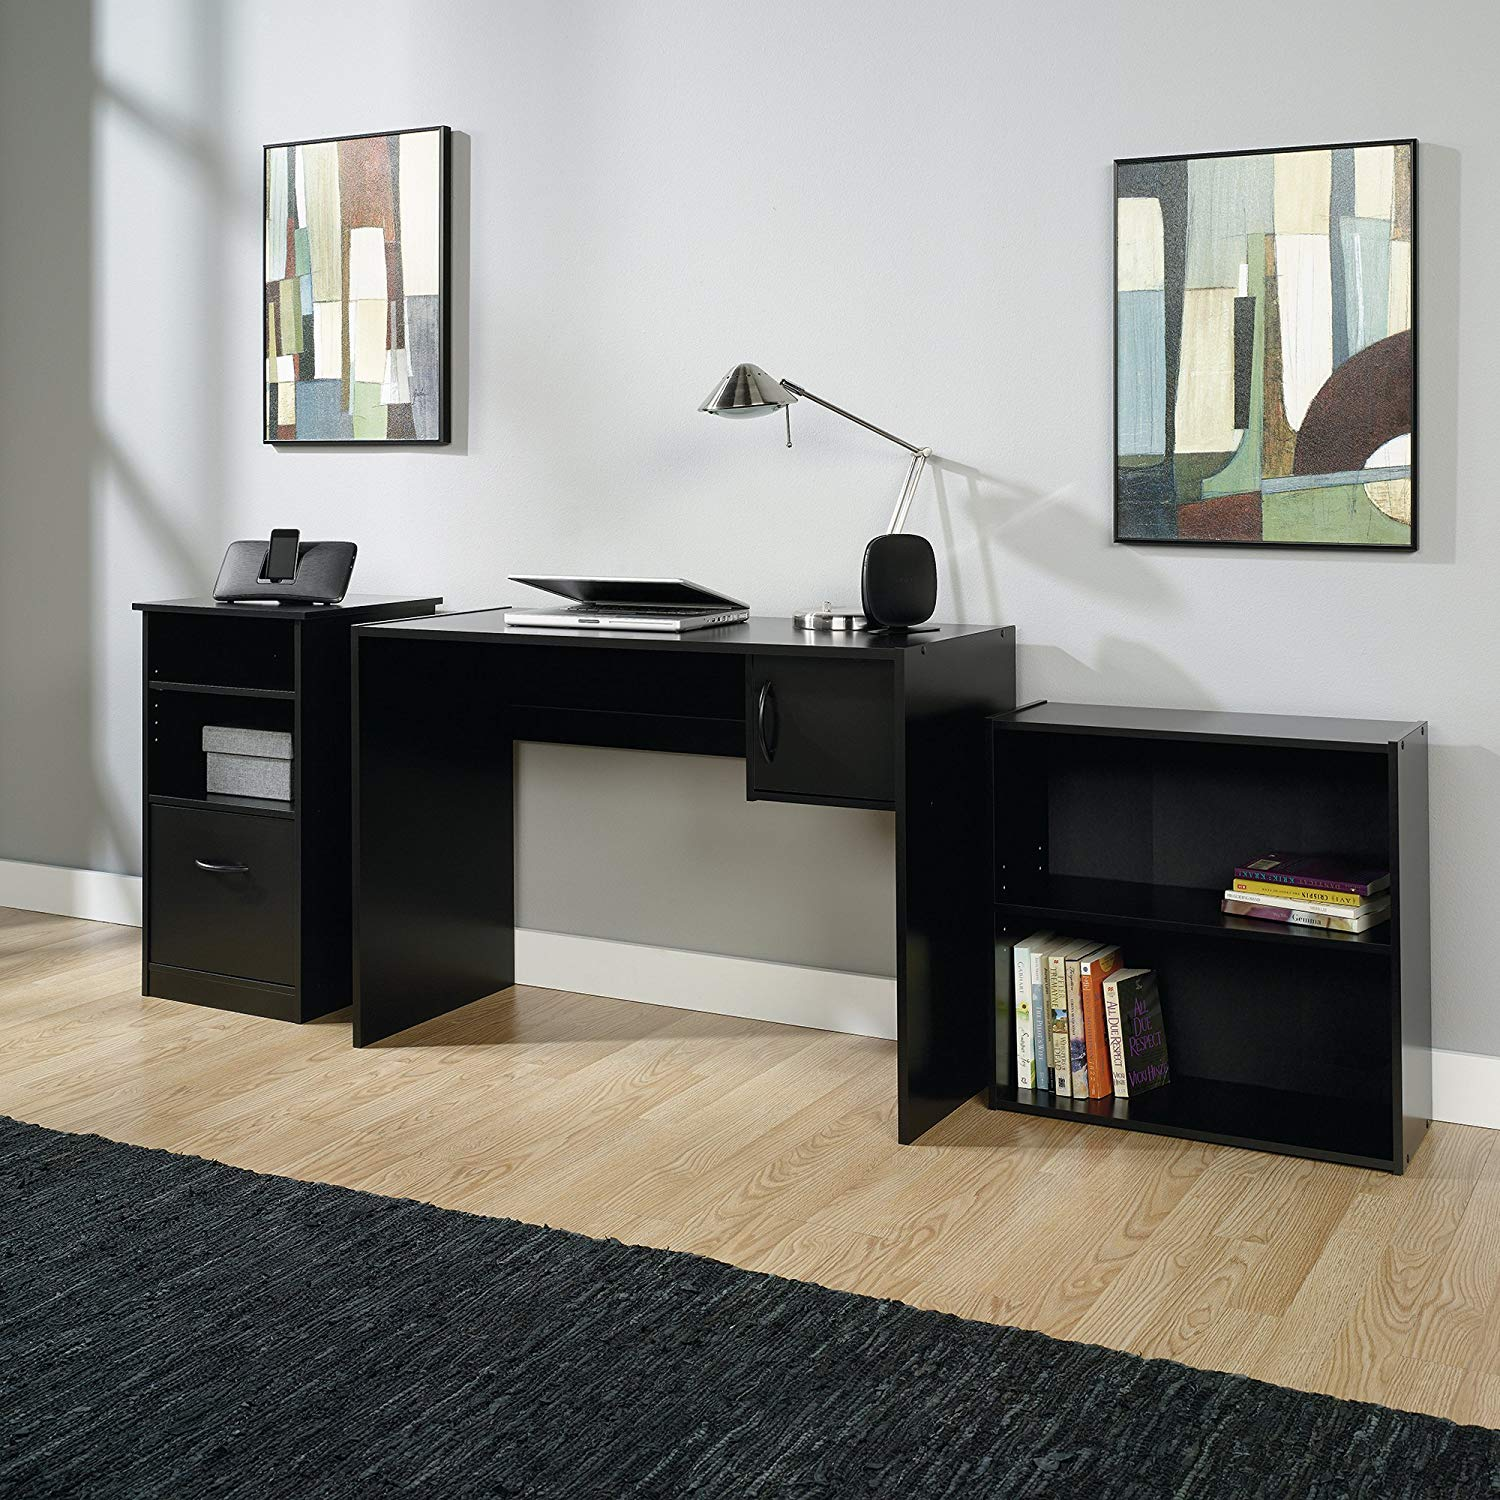 3-Piece Office Set, Includes a Bookcase, Desk and Cabinet all in an Elegant Black Finish to Match any Home Decor, 1 Adjustable Shelf, Storage Cabinet Features an Adjustable Shelf and a File Drawer